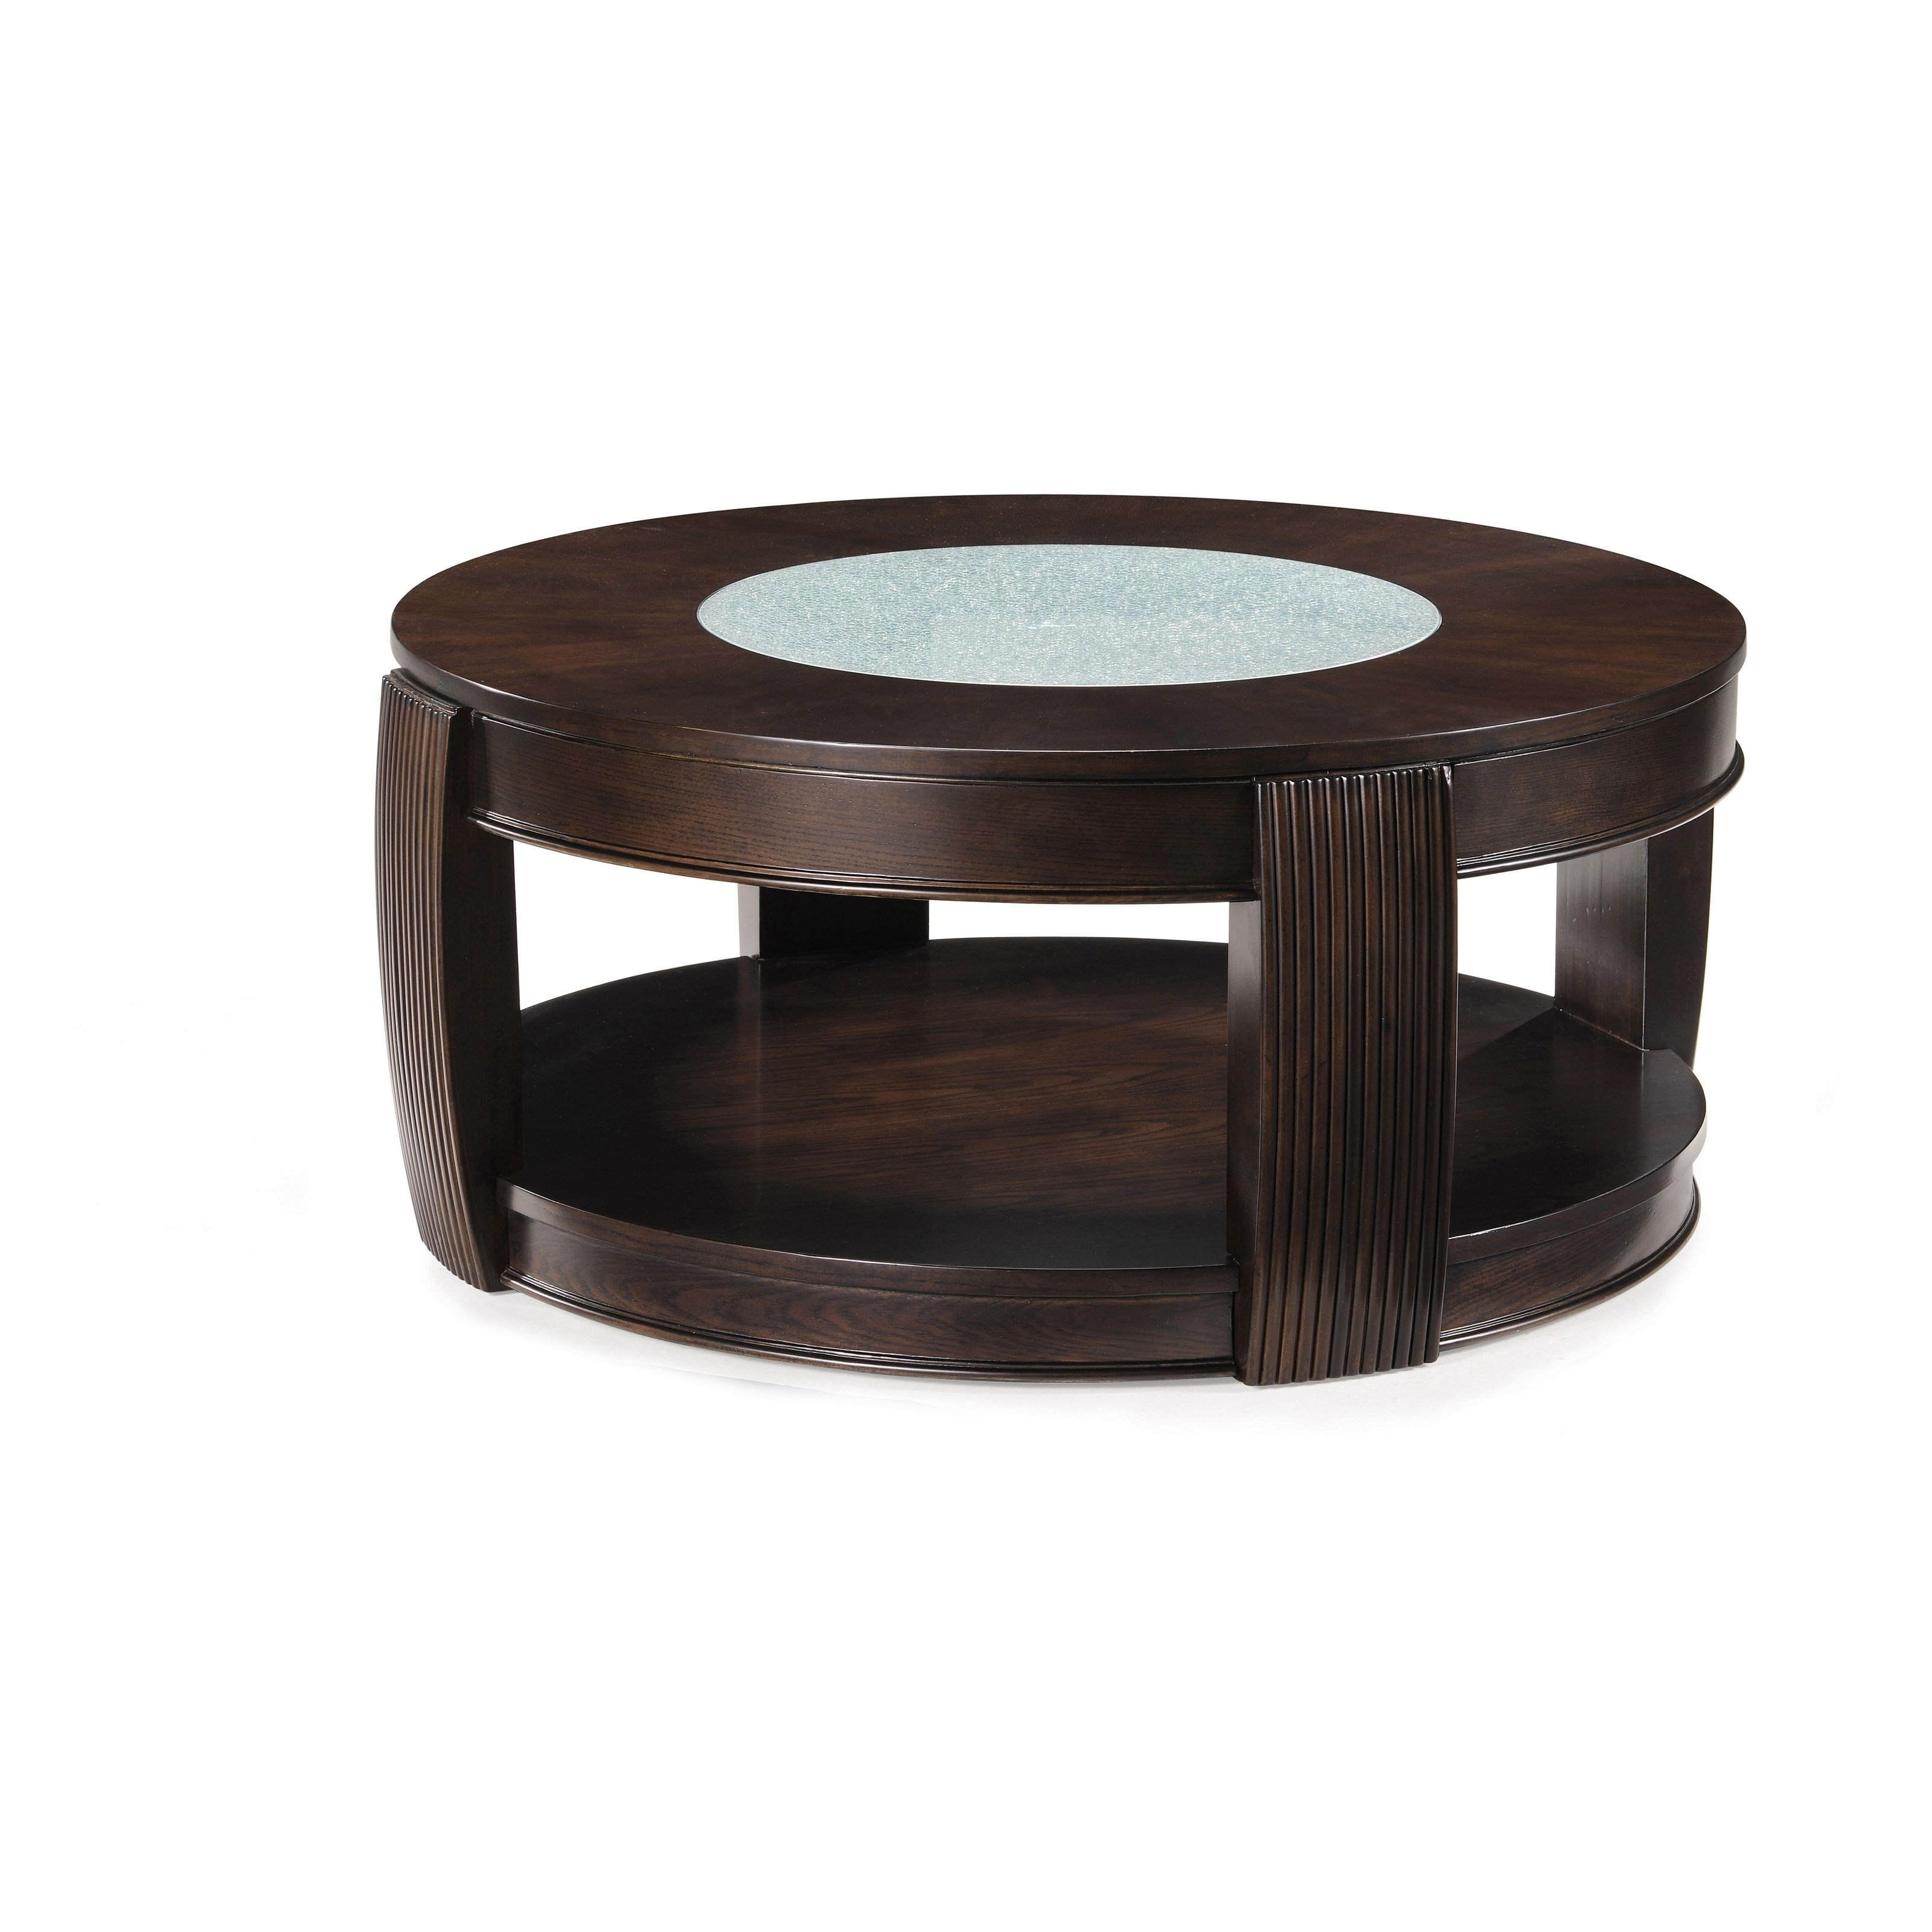 Most Recent Ontario Cocktail Tables With Casters Throughout Magnussen T1738 Ino Wood And Glass Round Coffee Table With Casters (View 14 of 20)